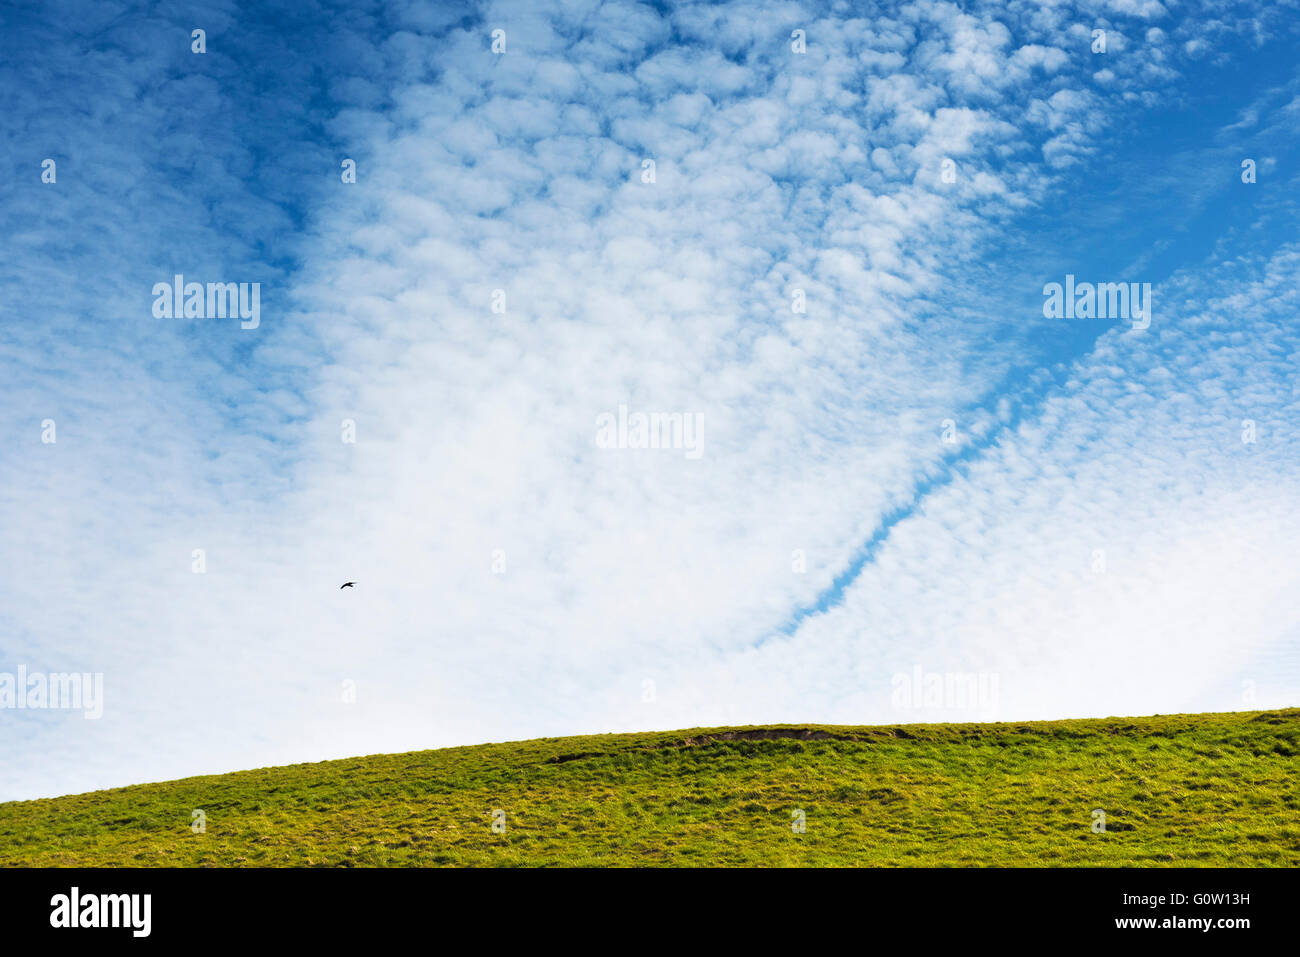 Clouds in the sky. - Stock Image